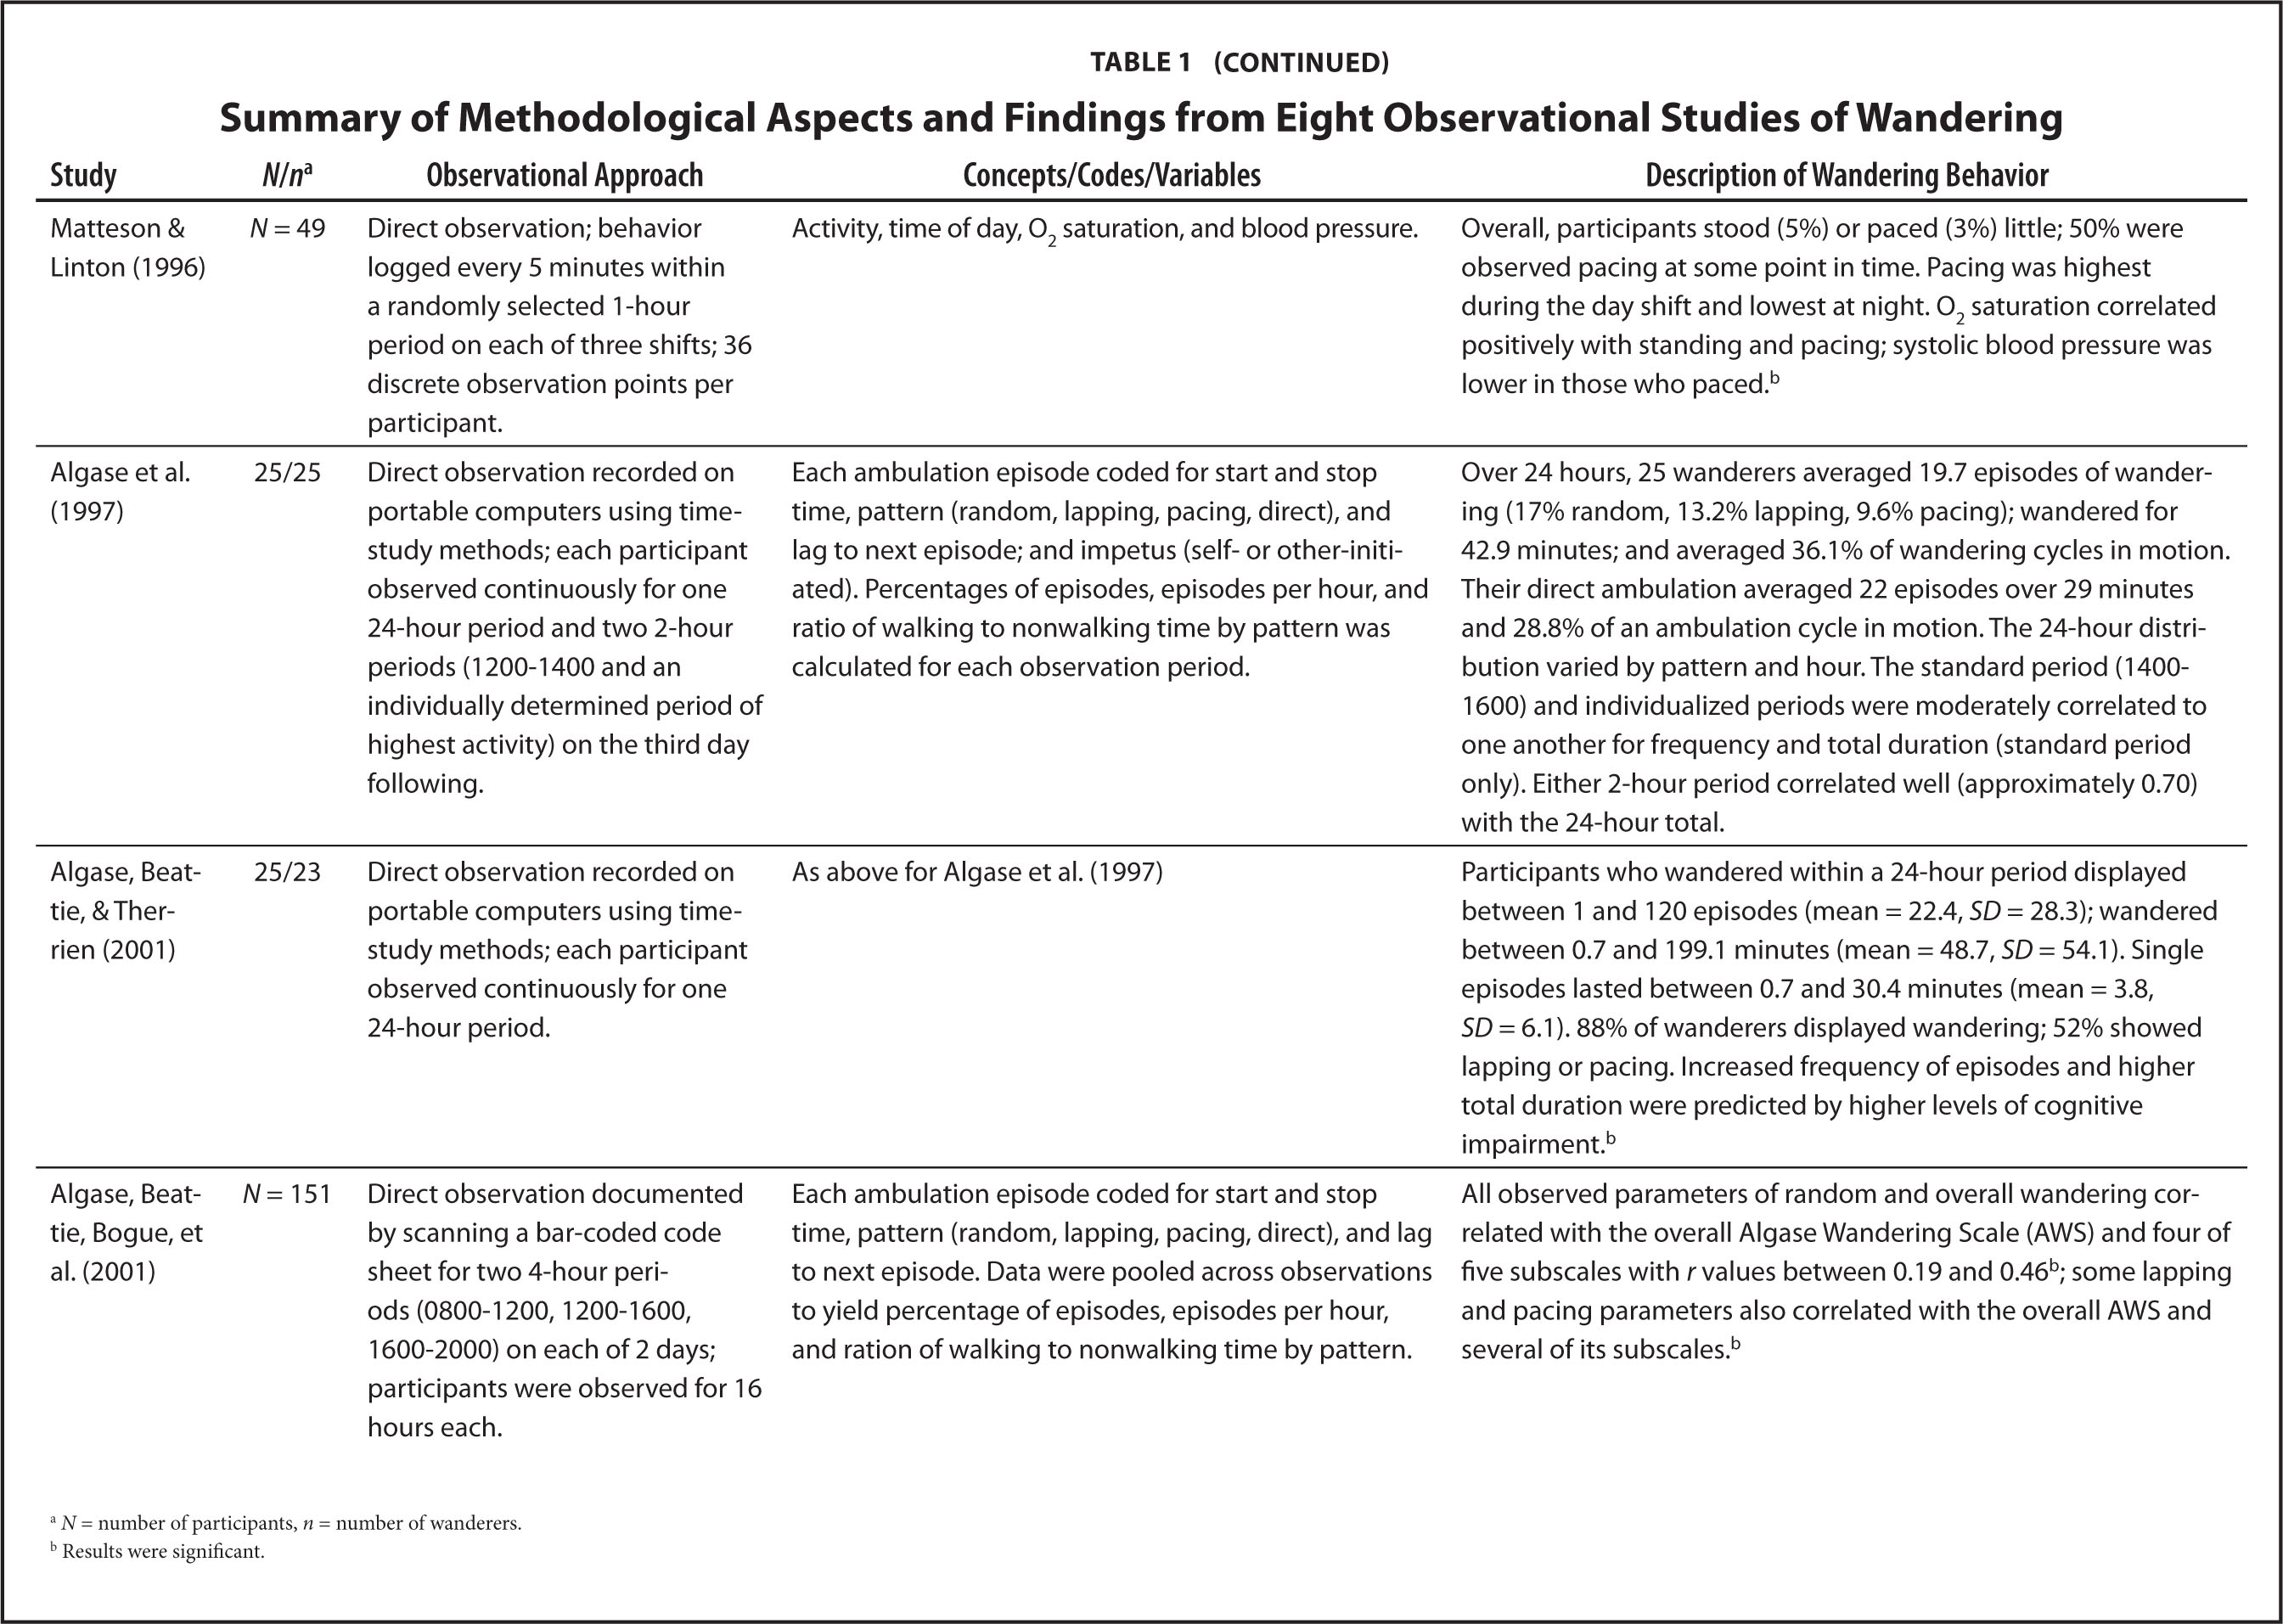 Summary of Methodological Aspects and Findings from Eight Observational Studies of Wandering